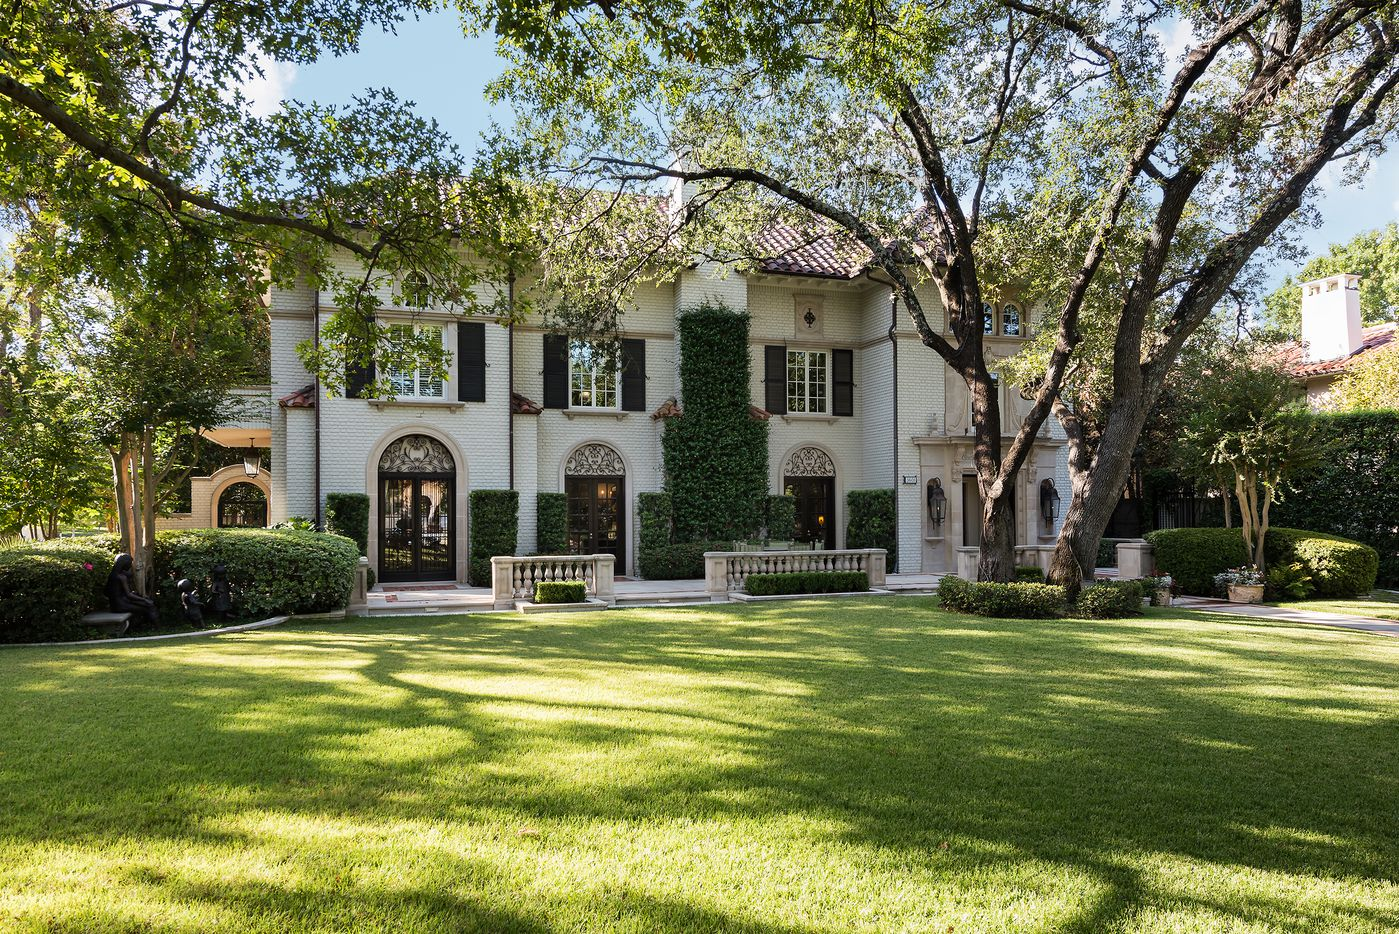 Take a look at the exterior of the home at 3601 Beverly Drive in Dallas, TX.